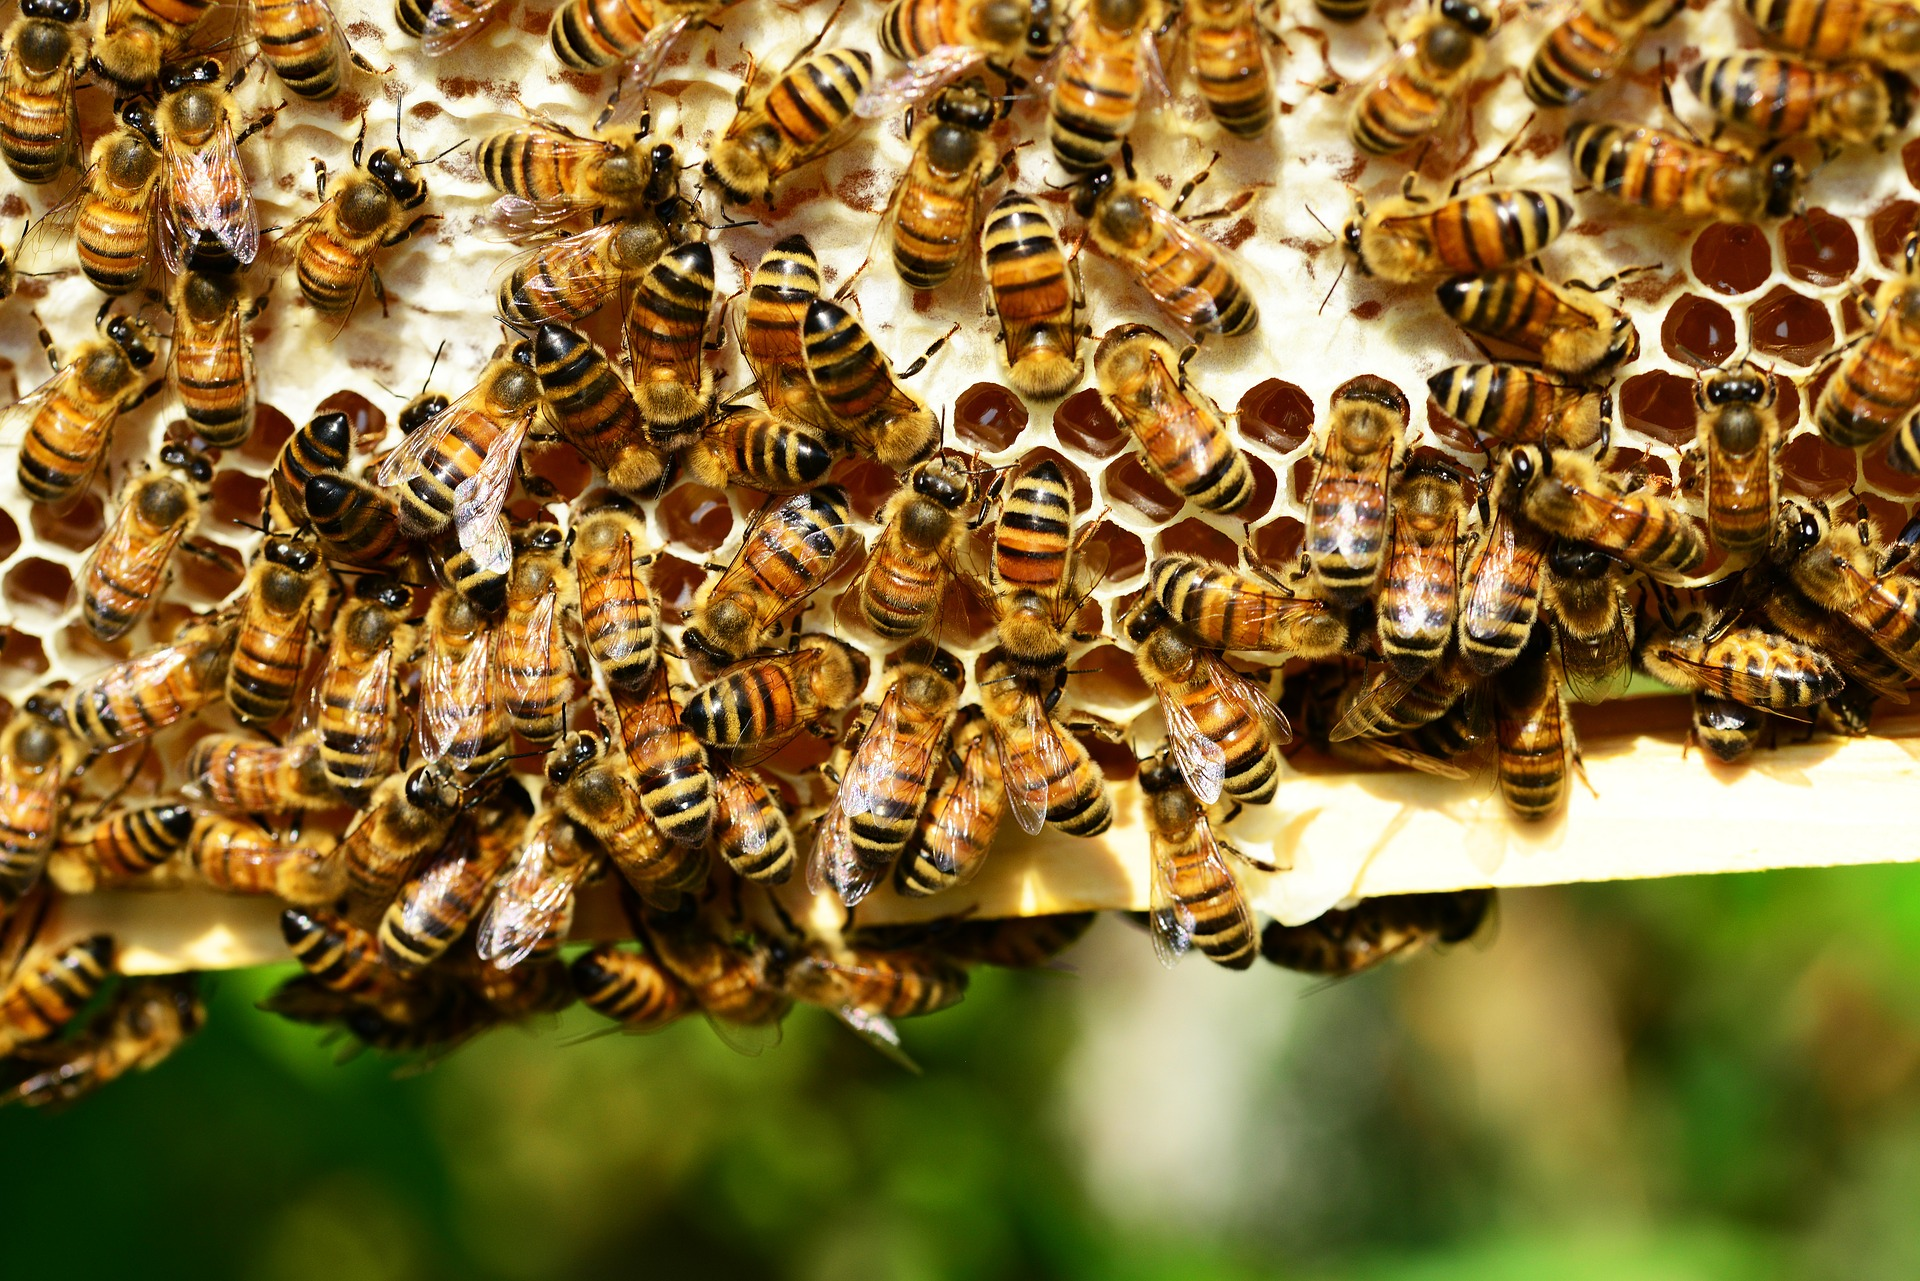 honey-bees-401238_1920_381940